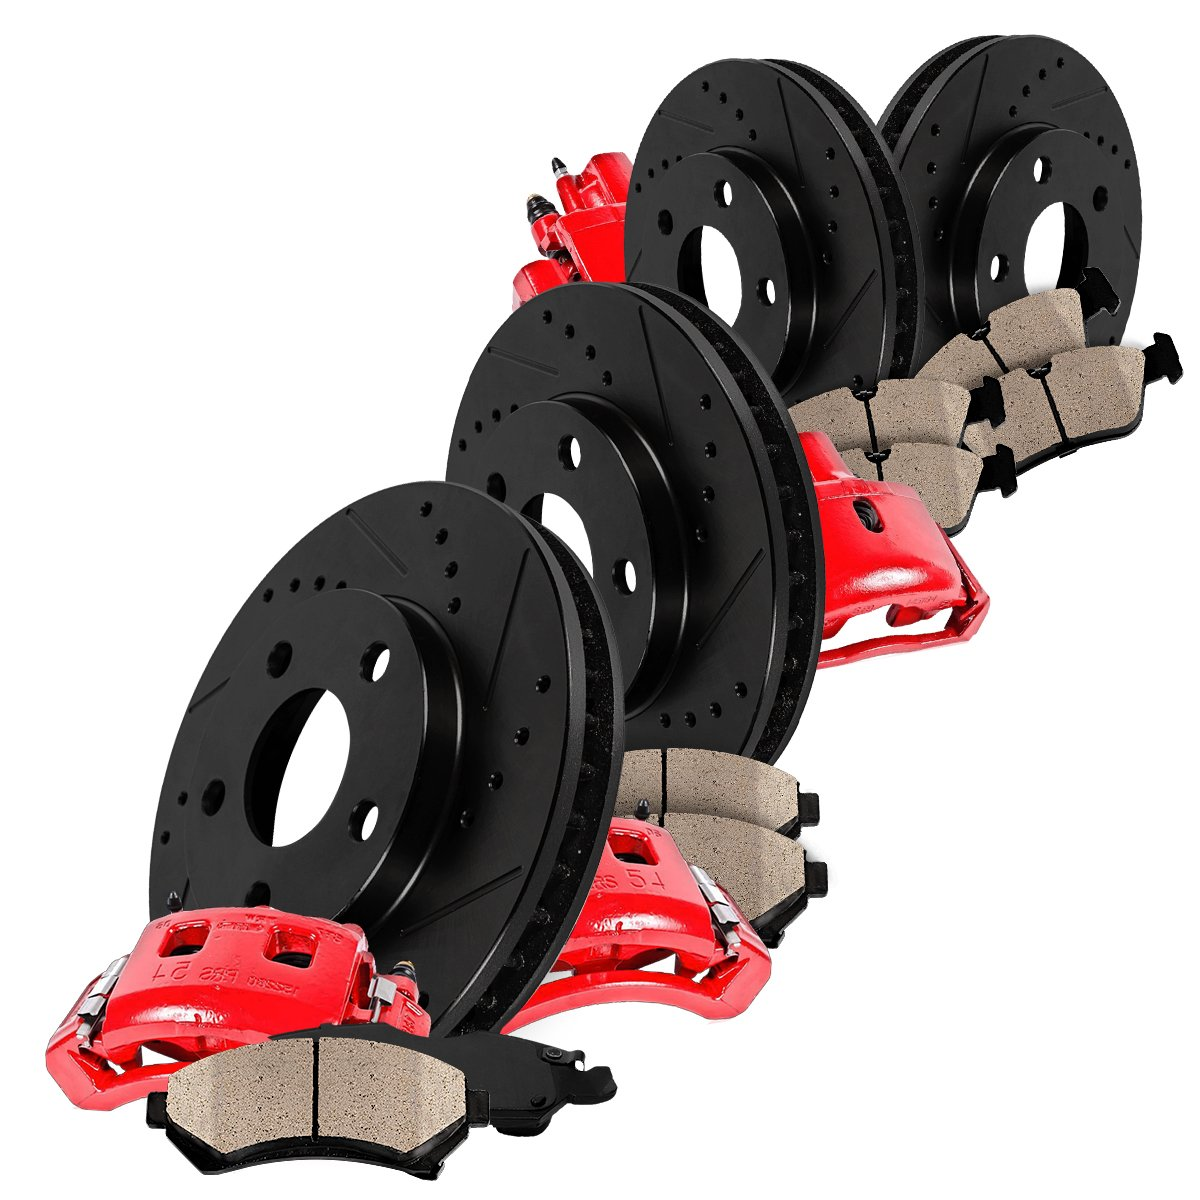 FRONT 4 Ceramic Pads Performance Kit Quiet Low Dust 8 Rotors REAR Powder Coated Red 4 Calipers +